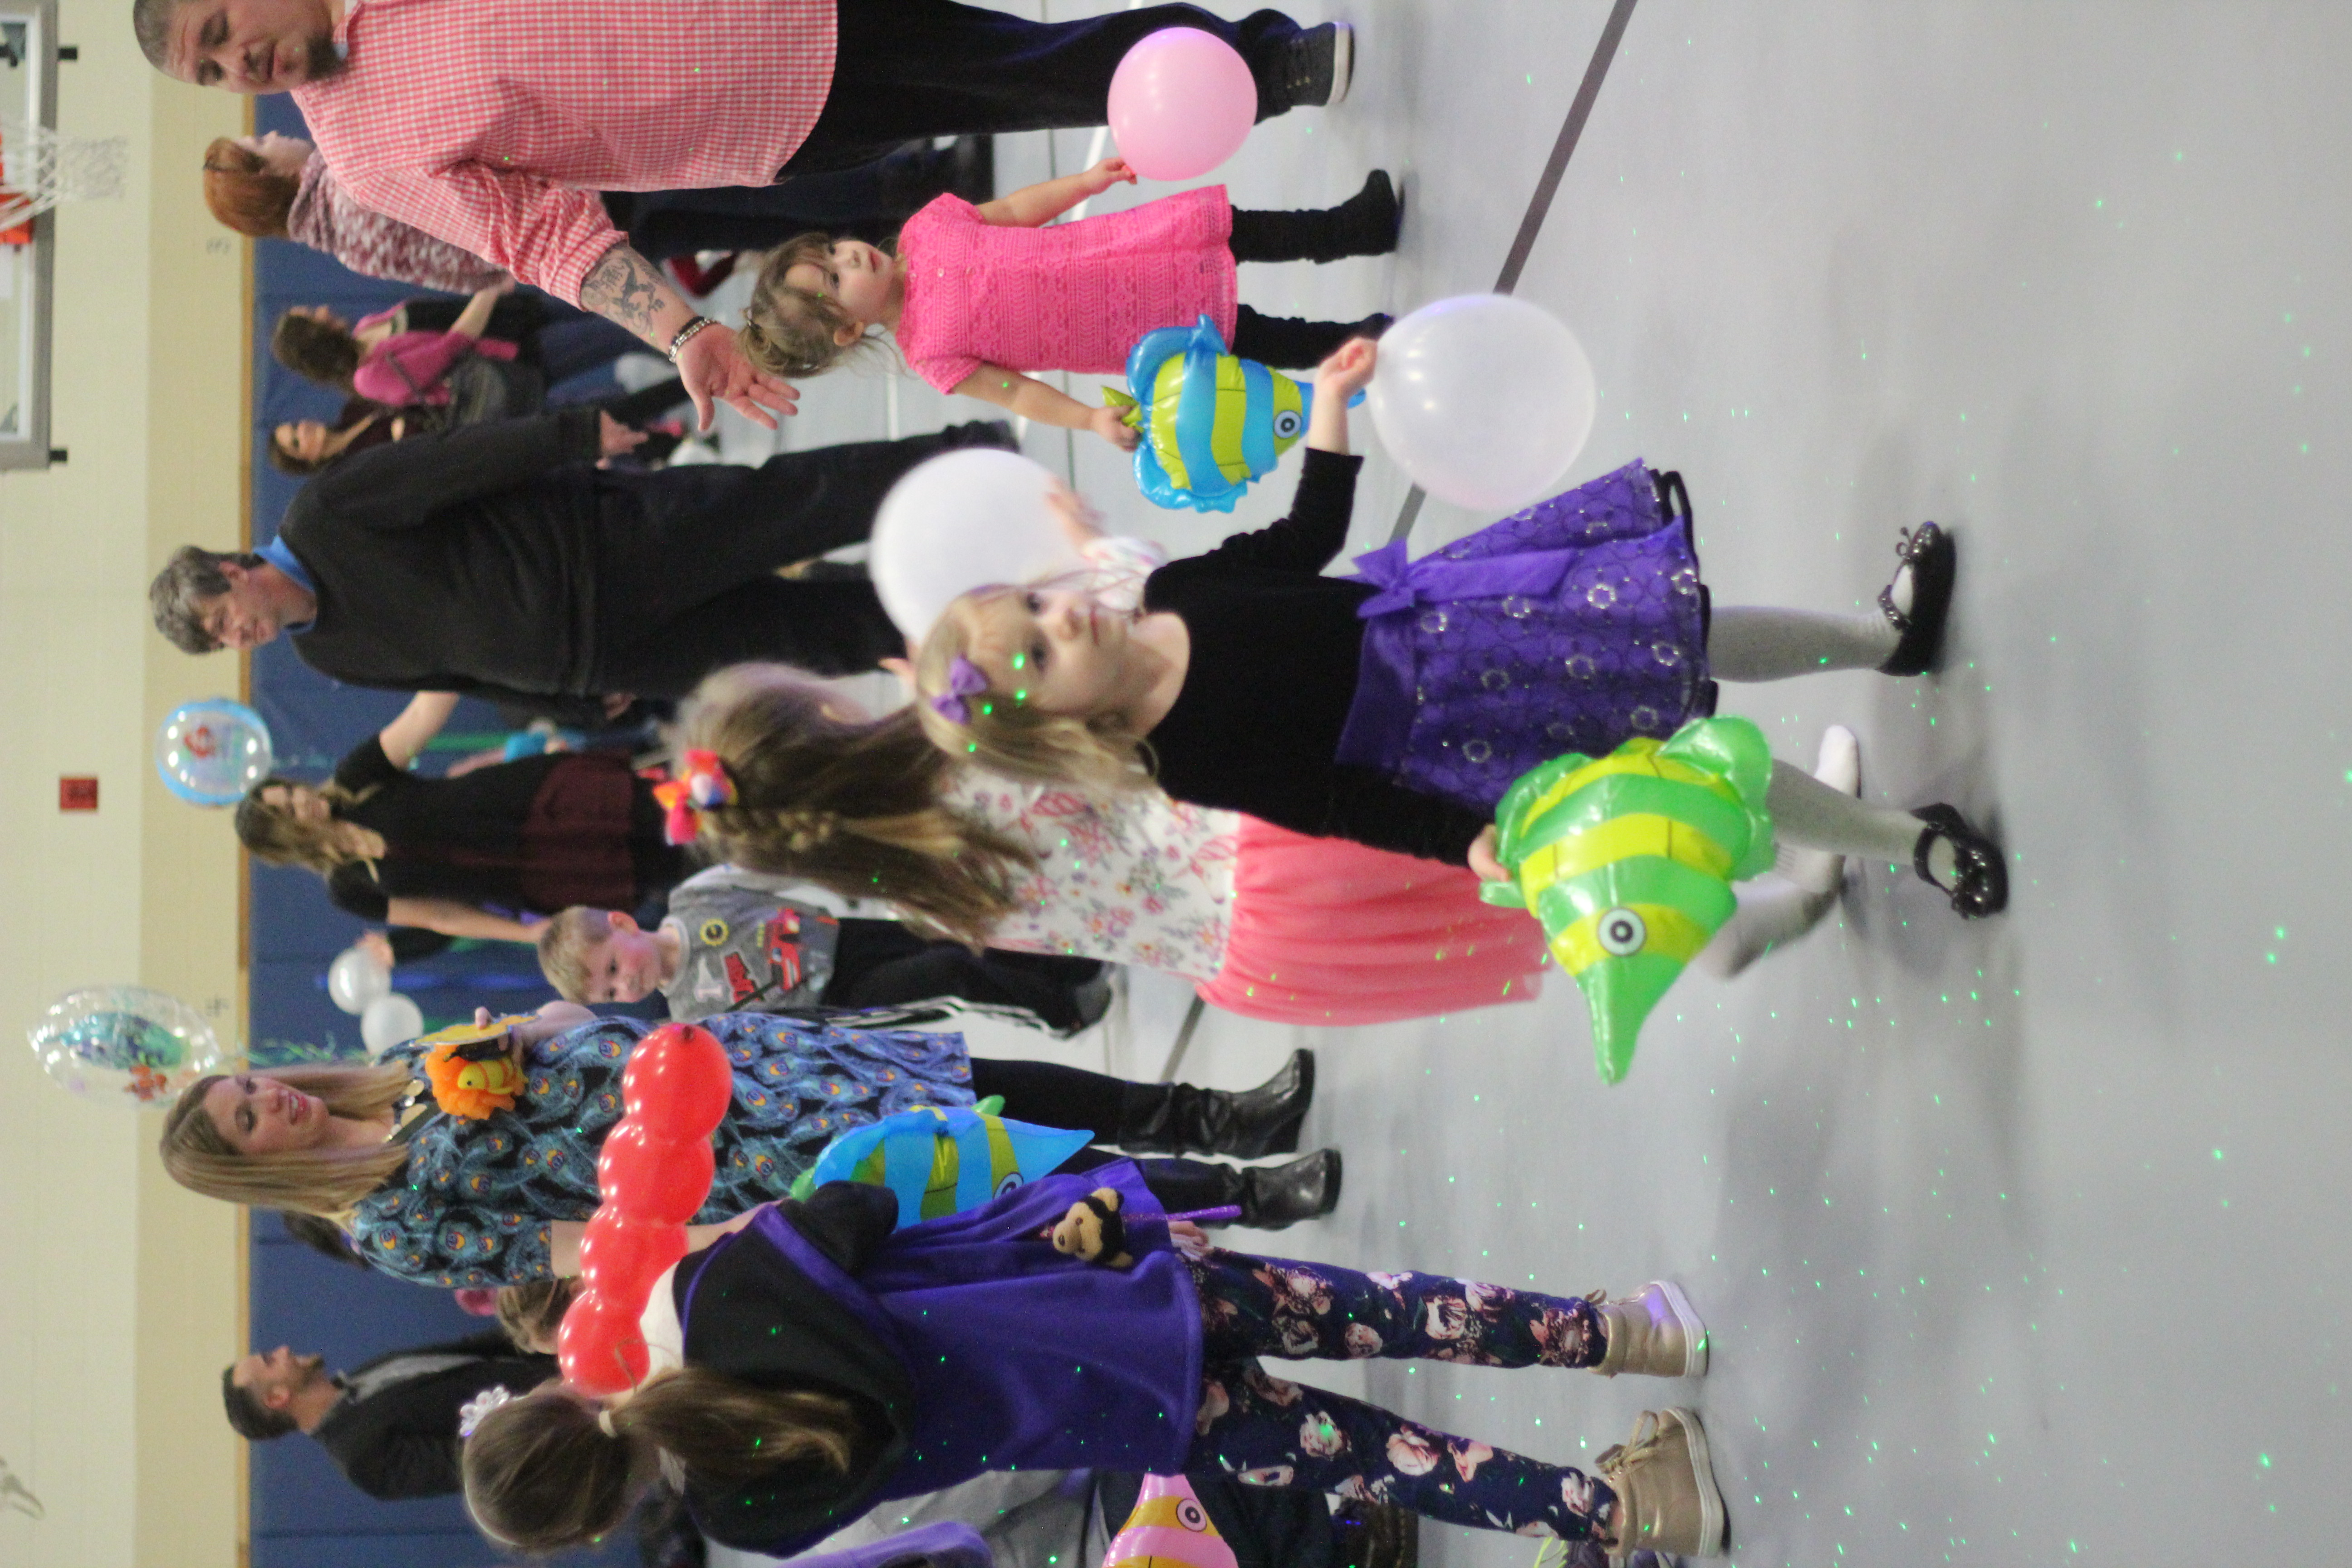 A girl plays with a balloon.